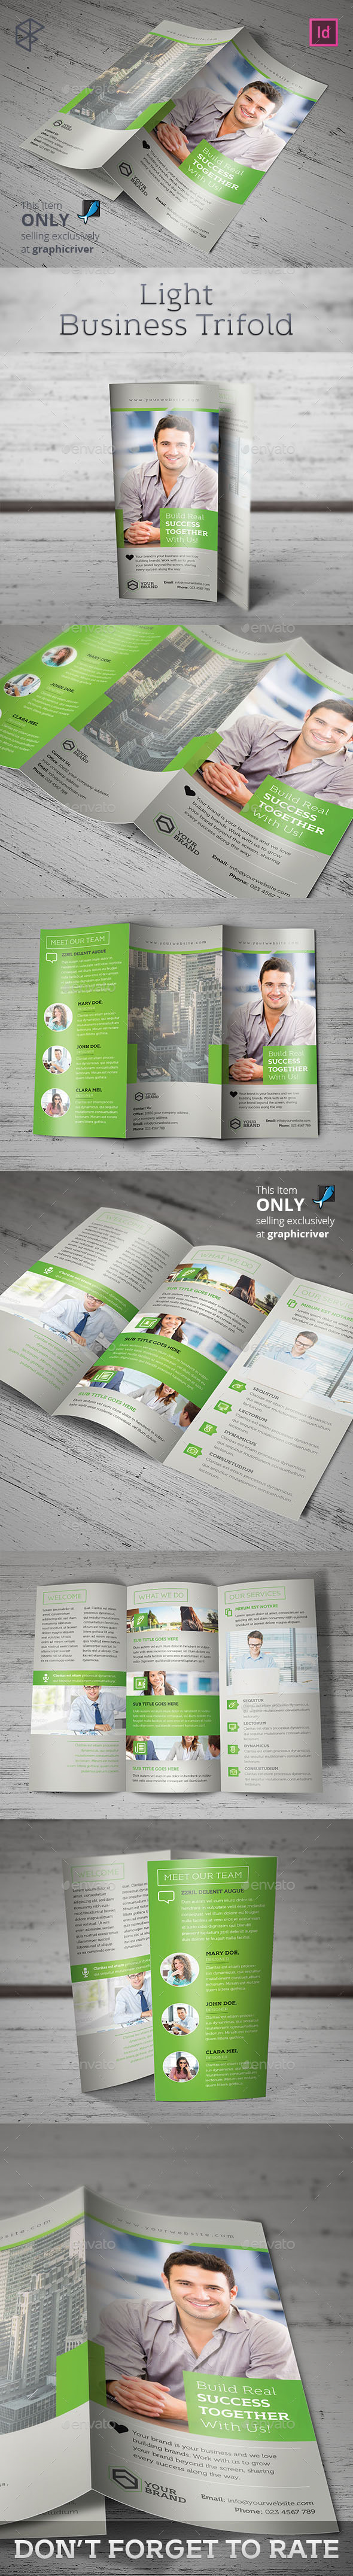 Light Business Trifold - Corporate Brochures